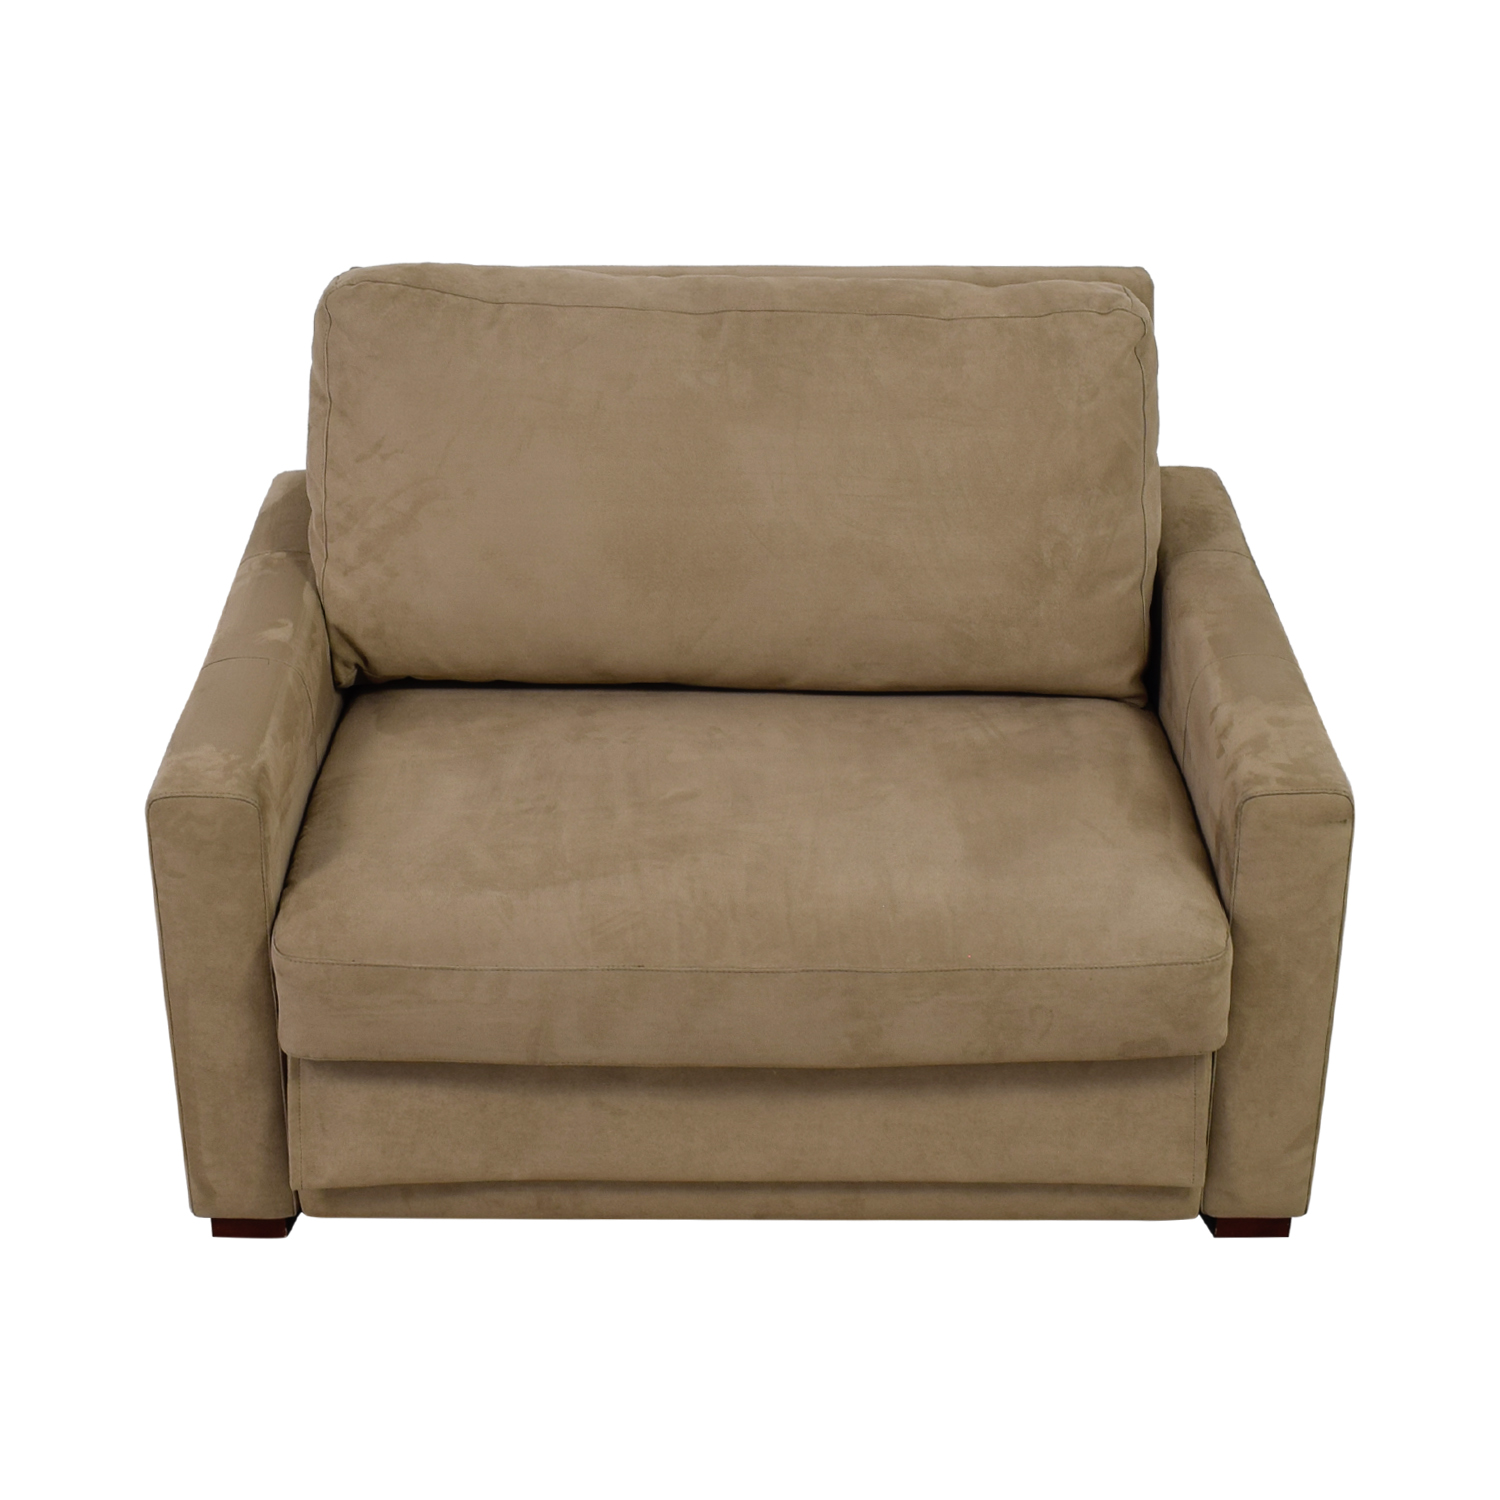 Comfort Sleepers Beige Accent Sofa Chair With Pullout Sleeper Loveseat